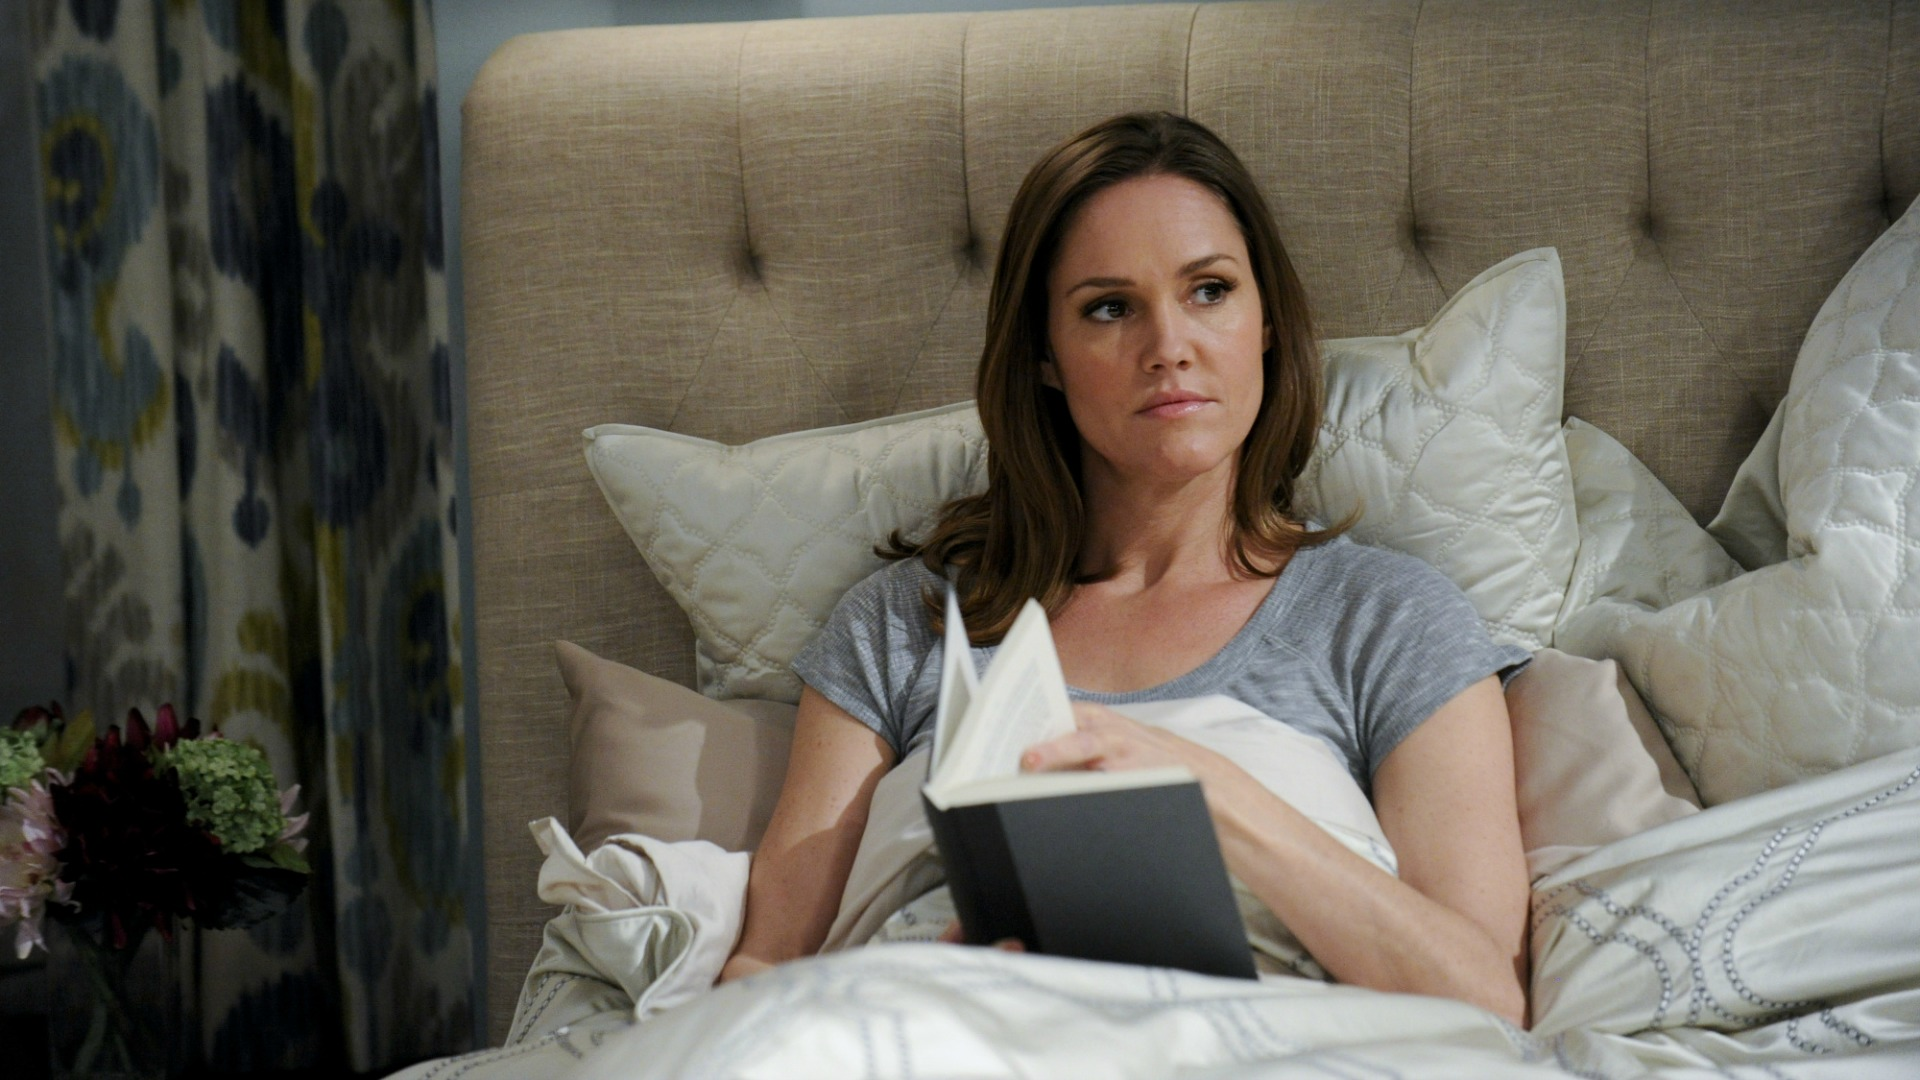 Donna reads a book in bed.